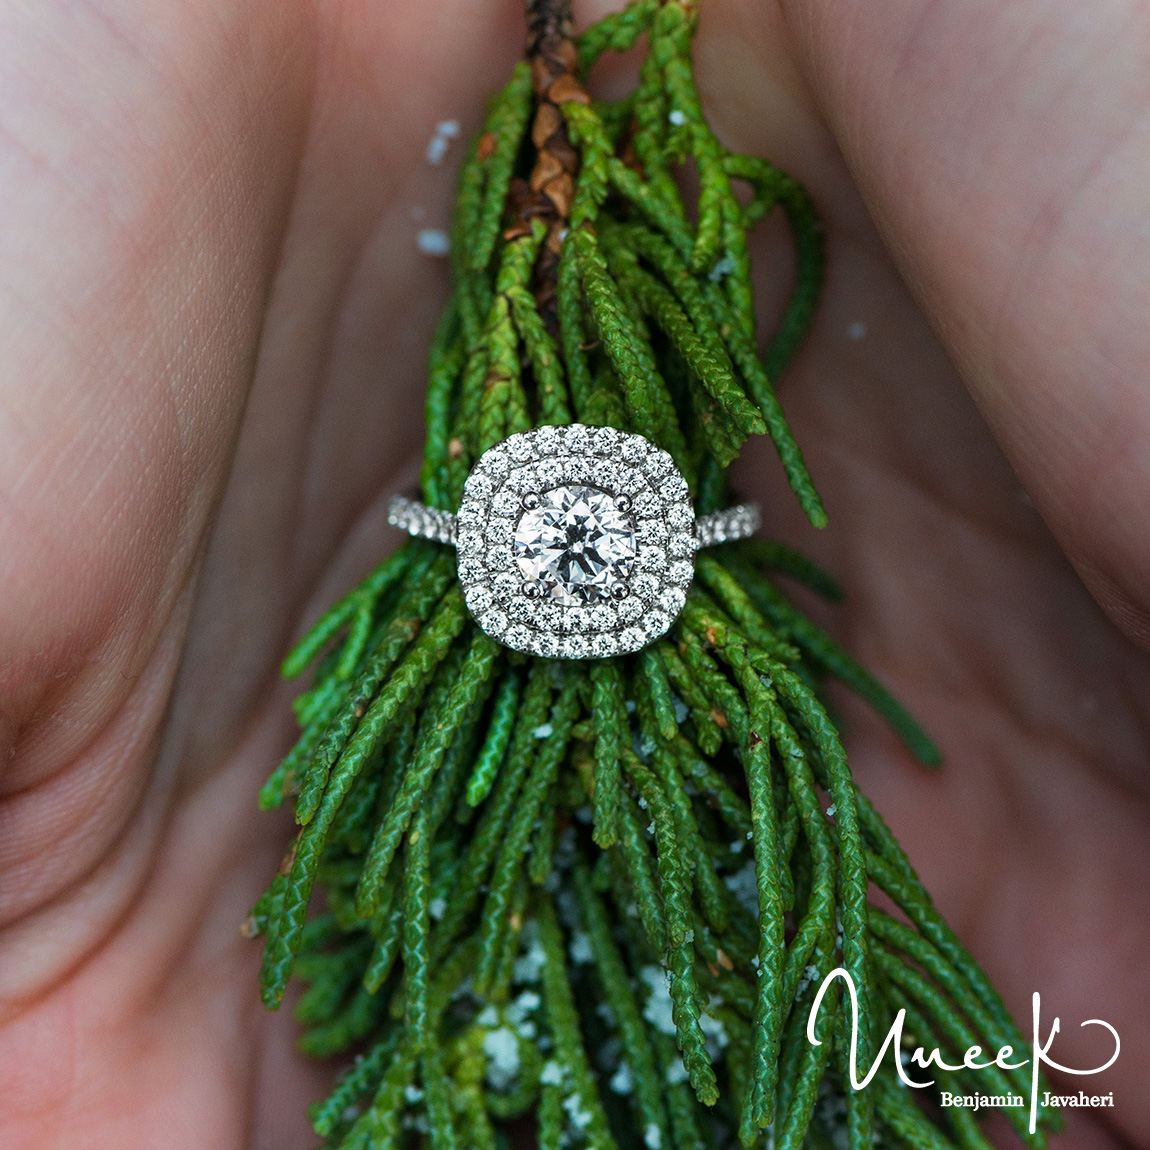 A Holiday Engagement: Keeping the Ring a Secret